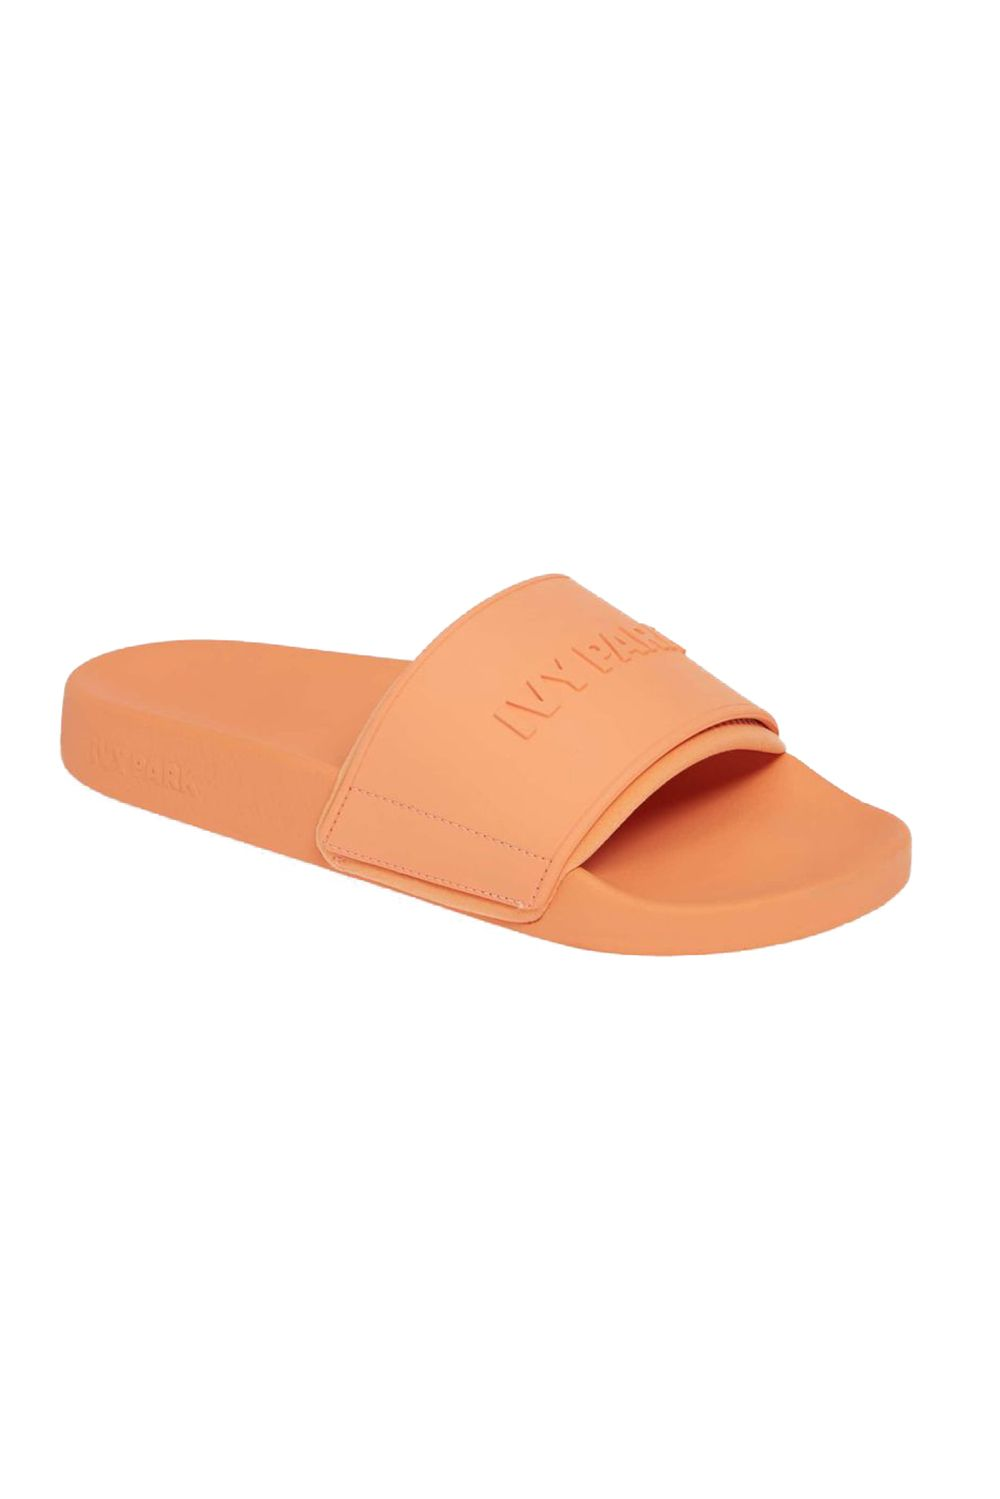 Chill Vibes Ivy Park, $42 SHOP IT Because you'll need a shoe for when you lounge by the pool during spring break. ••• For more stories like this, including celebrity news, beauty and fashion advice, savvy political commentary, and fascinating features, sign up for the Marie Claire newsletter.